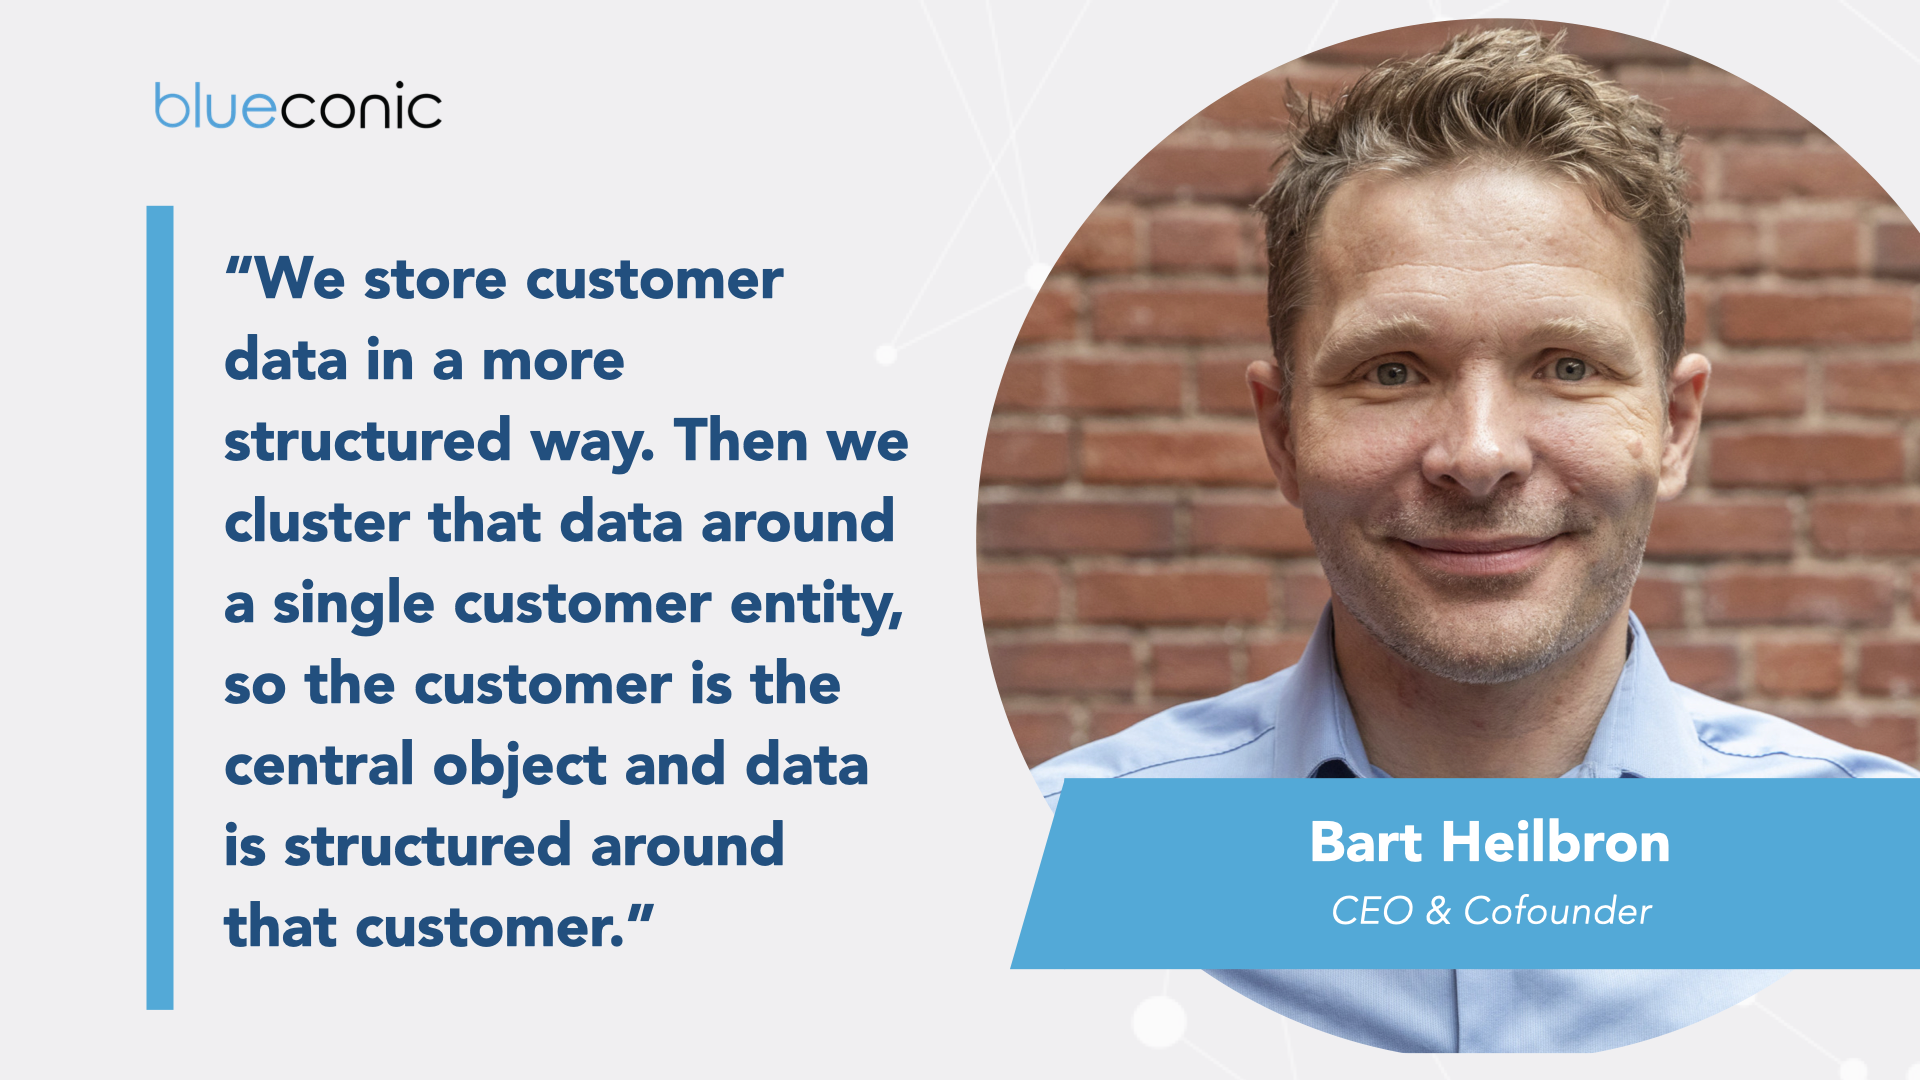 """""""We store [customer data] in a more structured way...Then we cluster that data around a single customer entity, so the customer is the central object and data is structured around that customer."""" BlueConic CEO Bart Heilbron"""